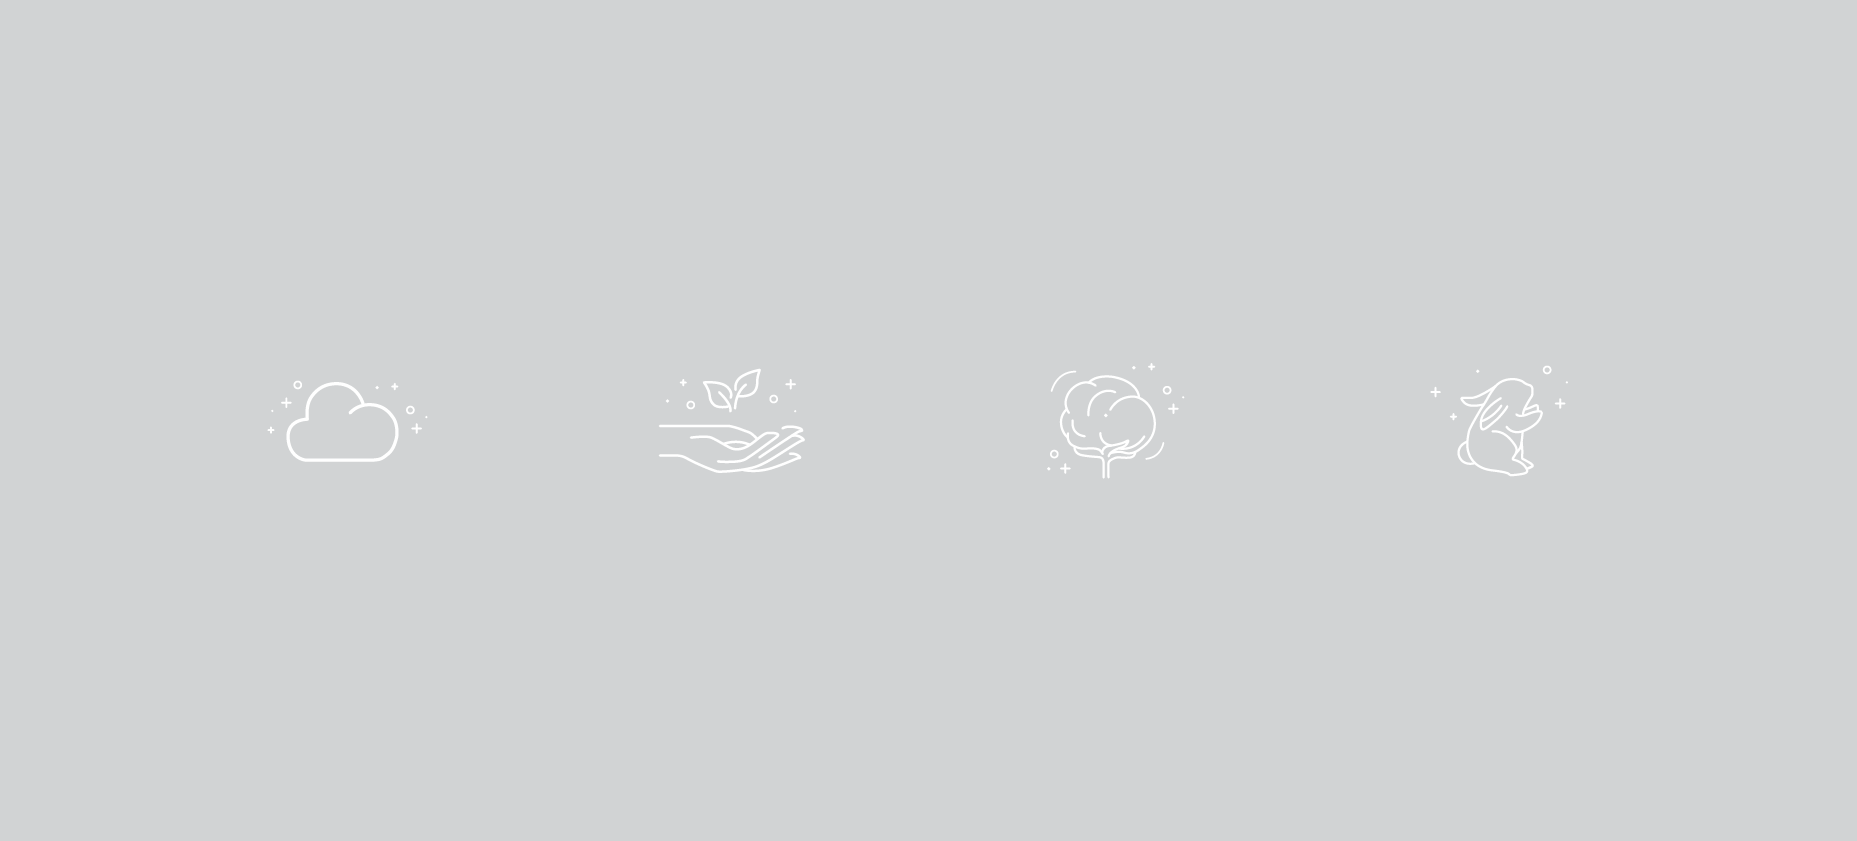 abandoned email icons-05.png